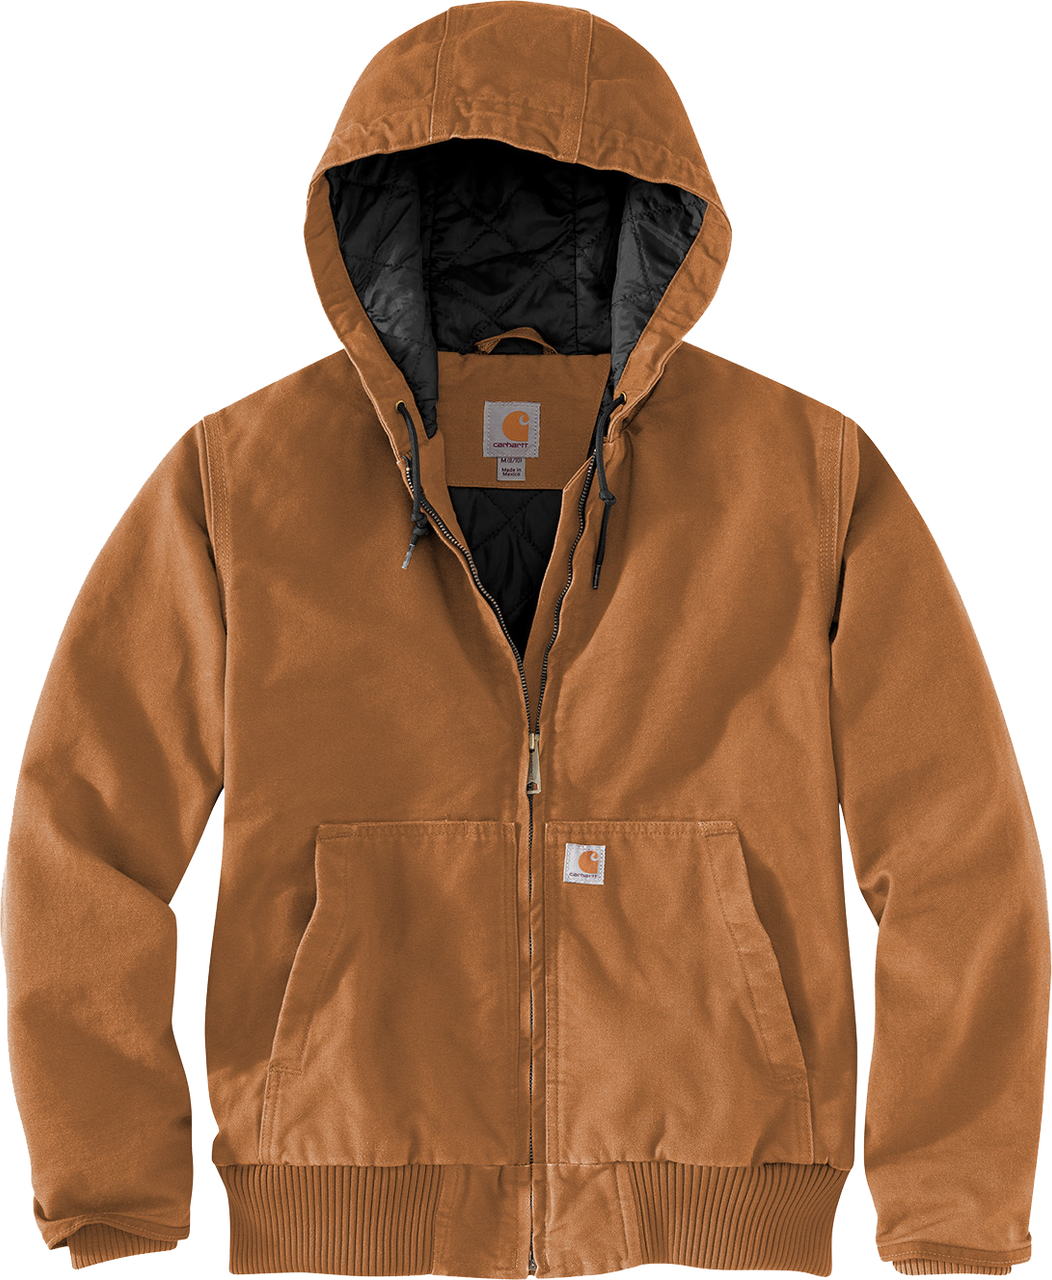 CT104053: Women's Carhartt Brown Washed Duck Active Jacket front view